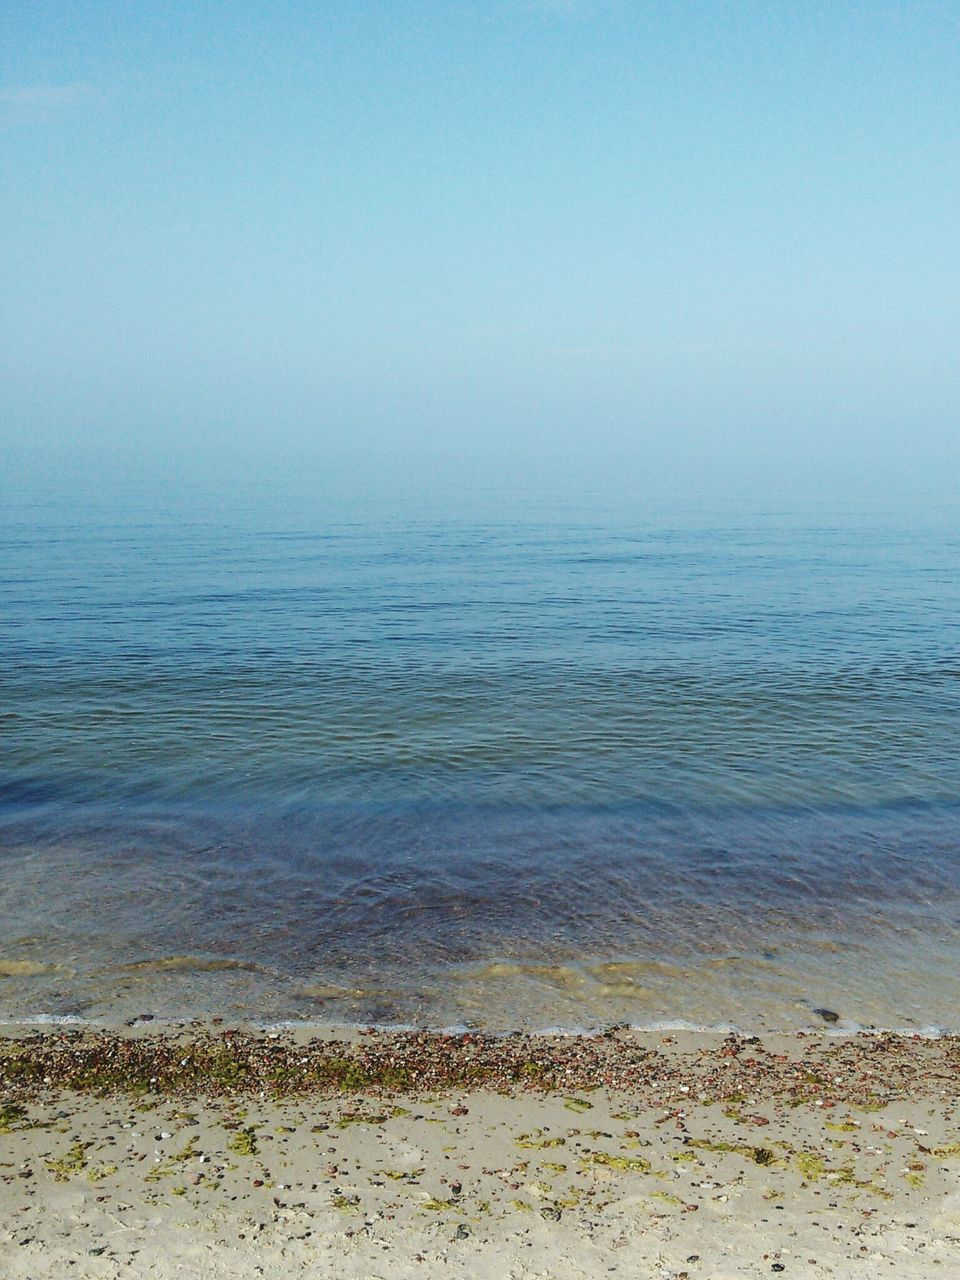 Scenic View Of Sea Against Clear Sky In Foggy Weather